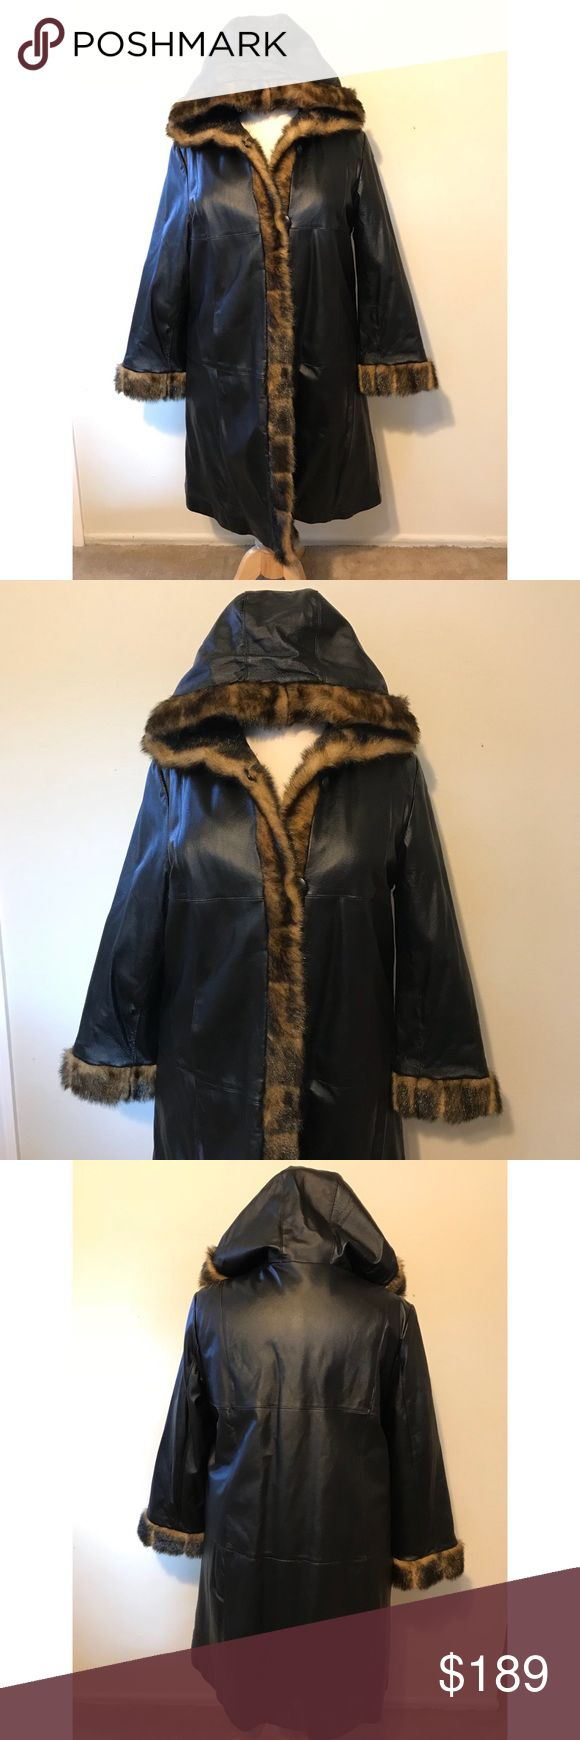 Terry Lewis leather trench coat w/ fur trim 1X The jacket is made of black genuine leather with a faux fur trim around the hood, cuffs & down the front. The interior is in pristine condition and has a black quilted pattern to it. It has 4 original buttons with leather loops to close the front. This jacket has only been worn once and then stored in a coat closet so it's in excellent condition except for one loose stitch on the seam at the right shoulder. All measurements have been taken from…